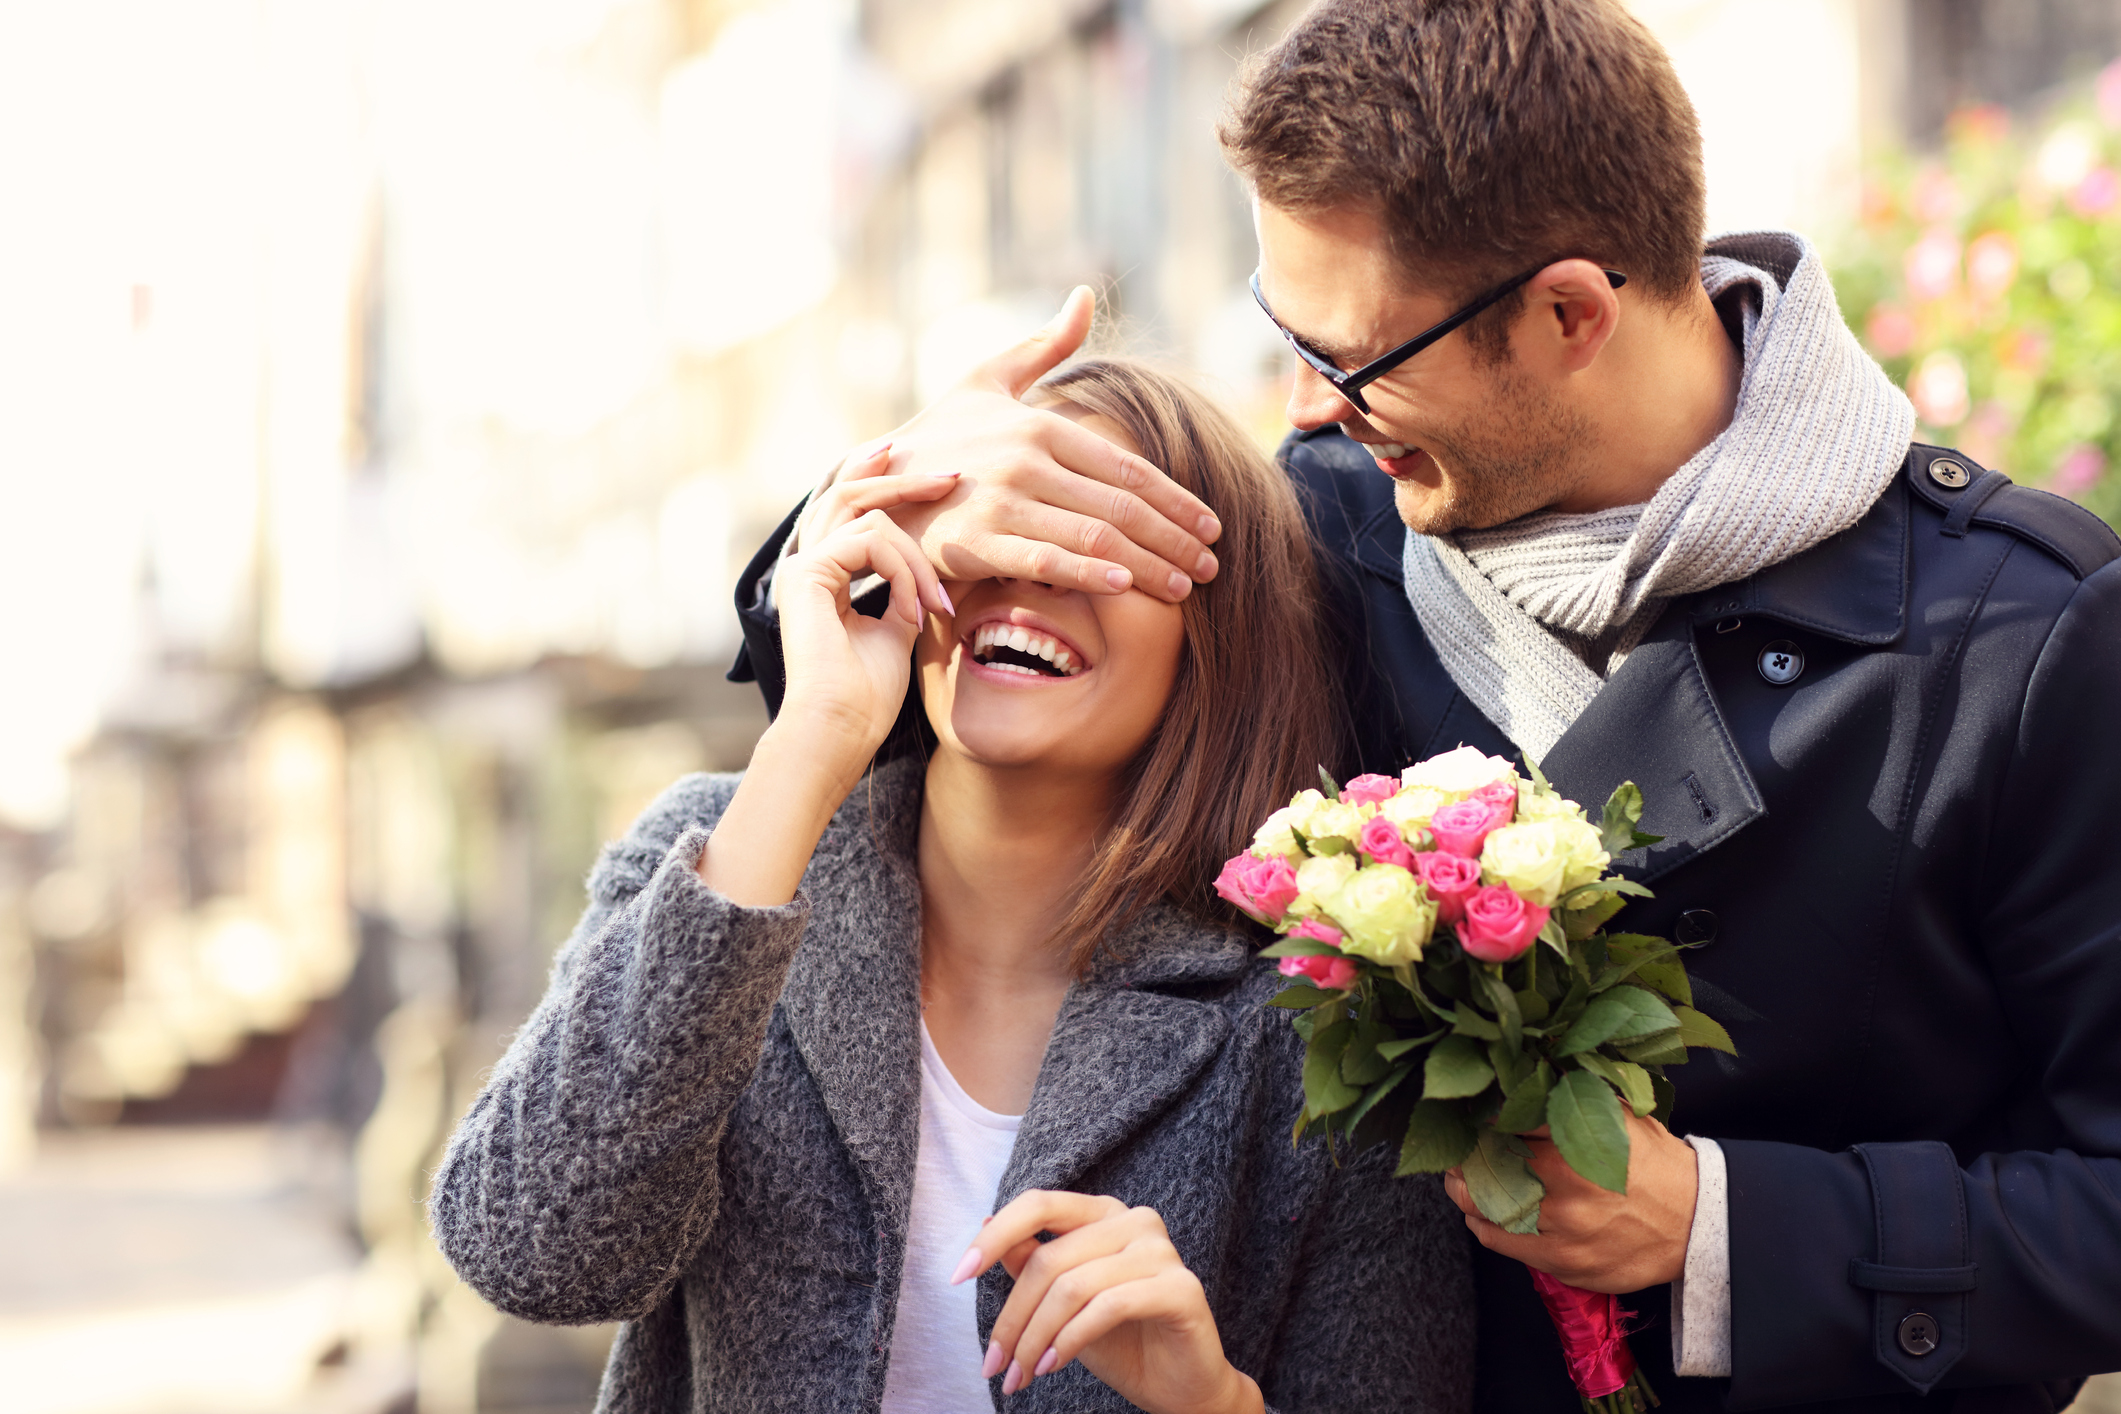 Picture of young man surprising woman with flowers